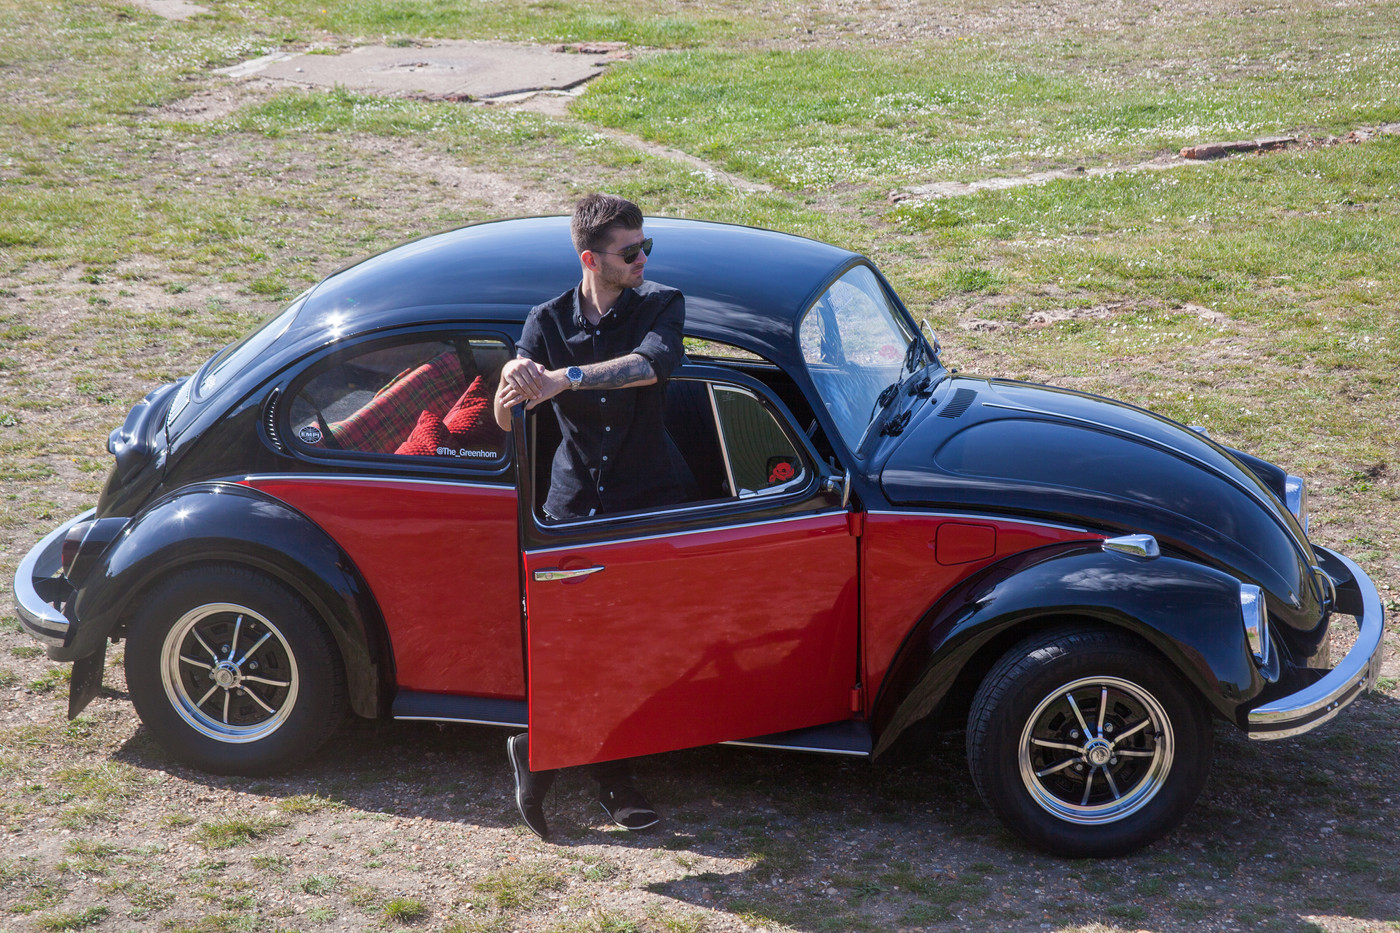 Lewis Rogers and his 1973 VW Beetle